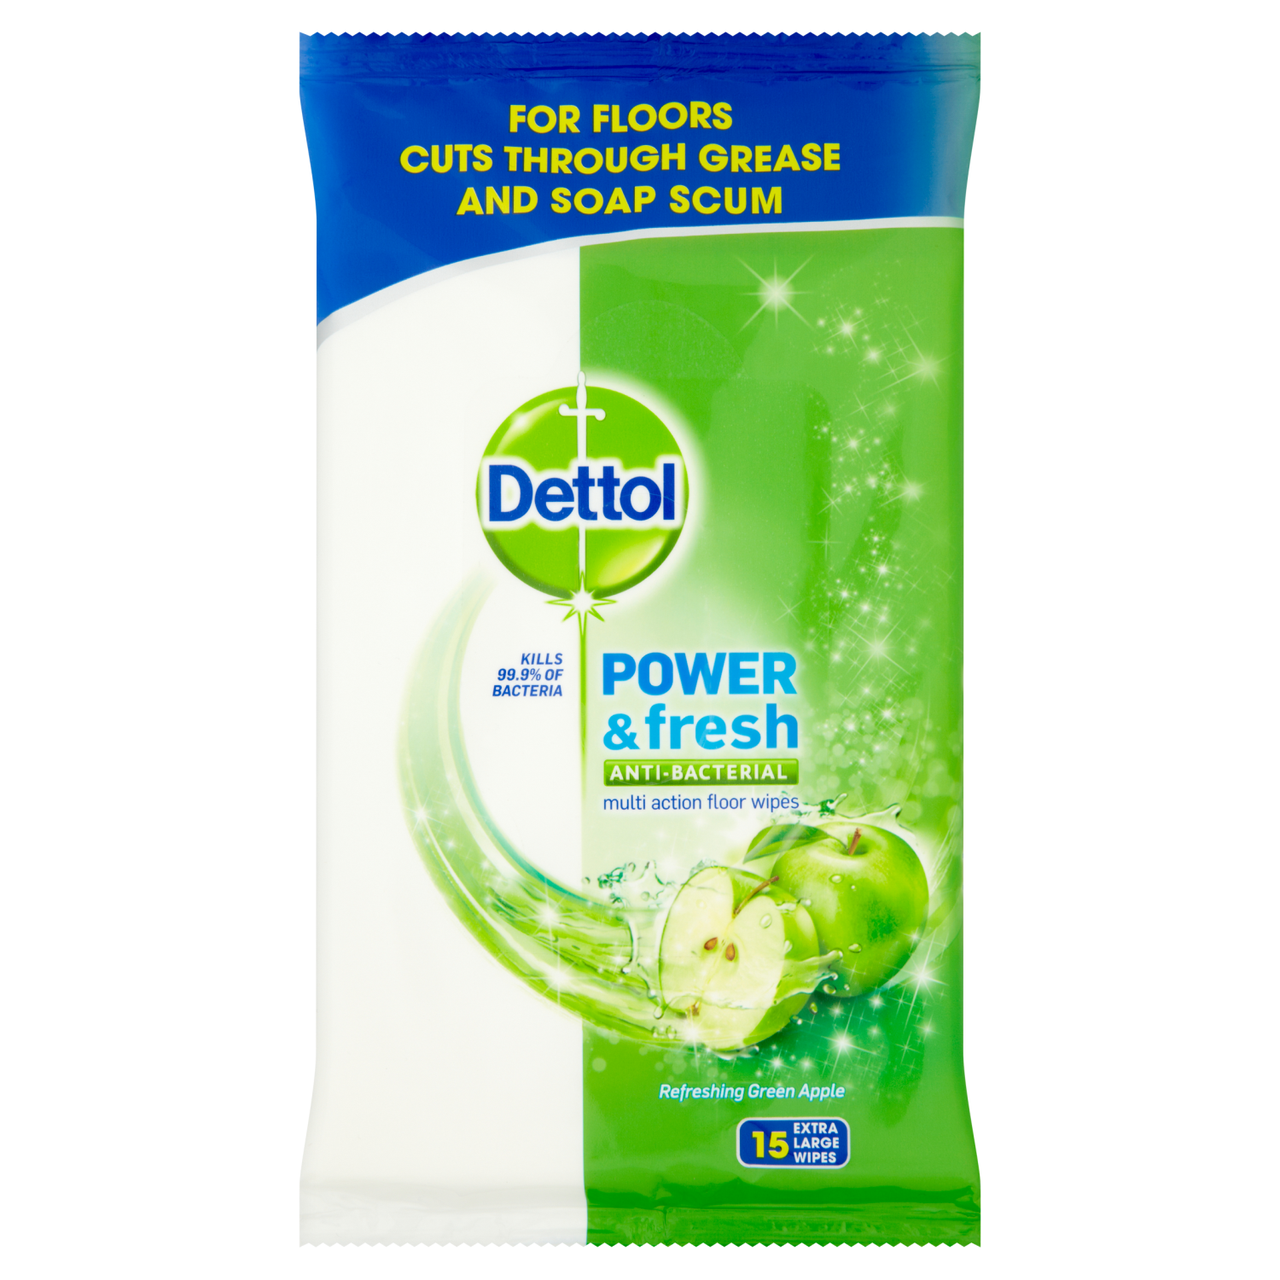 Dettol Power & Fresh Anti Bacterial Multi Action Floor Wipes